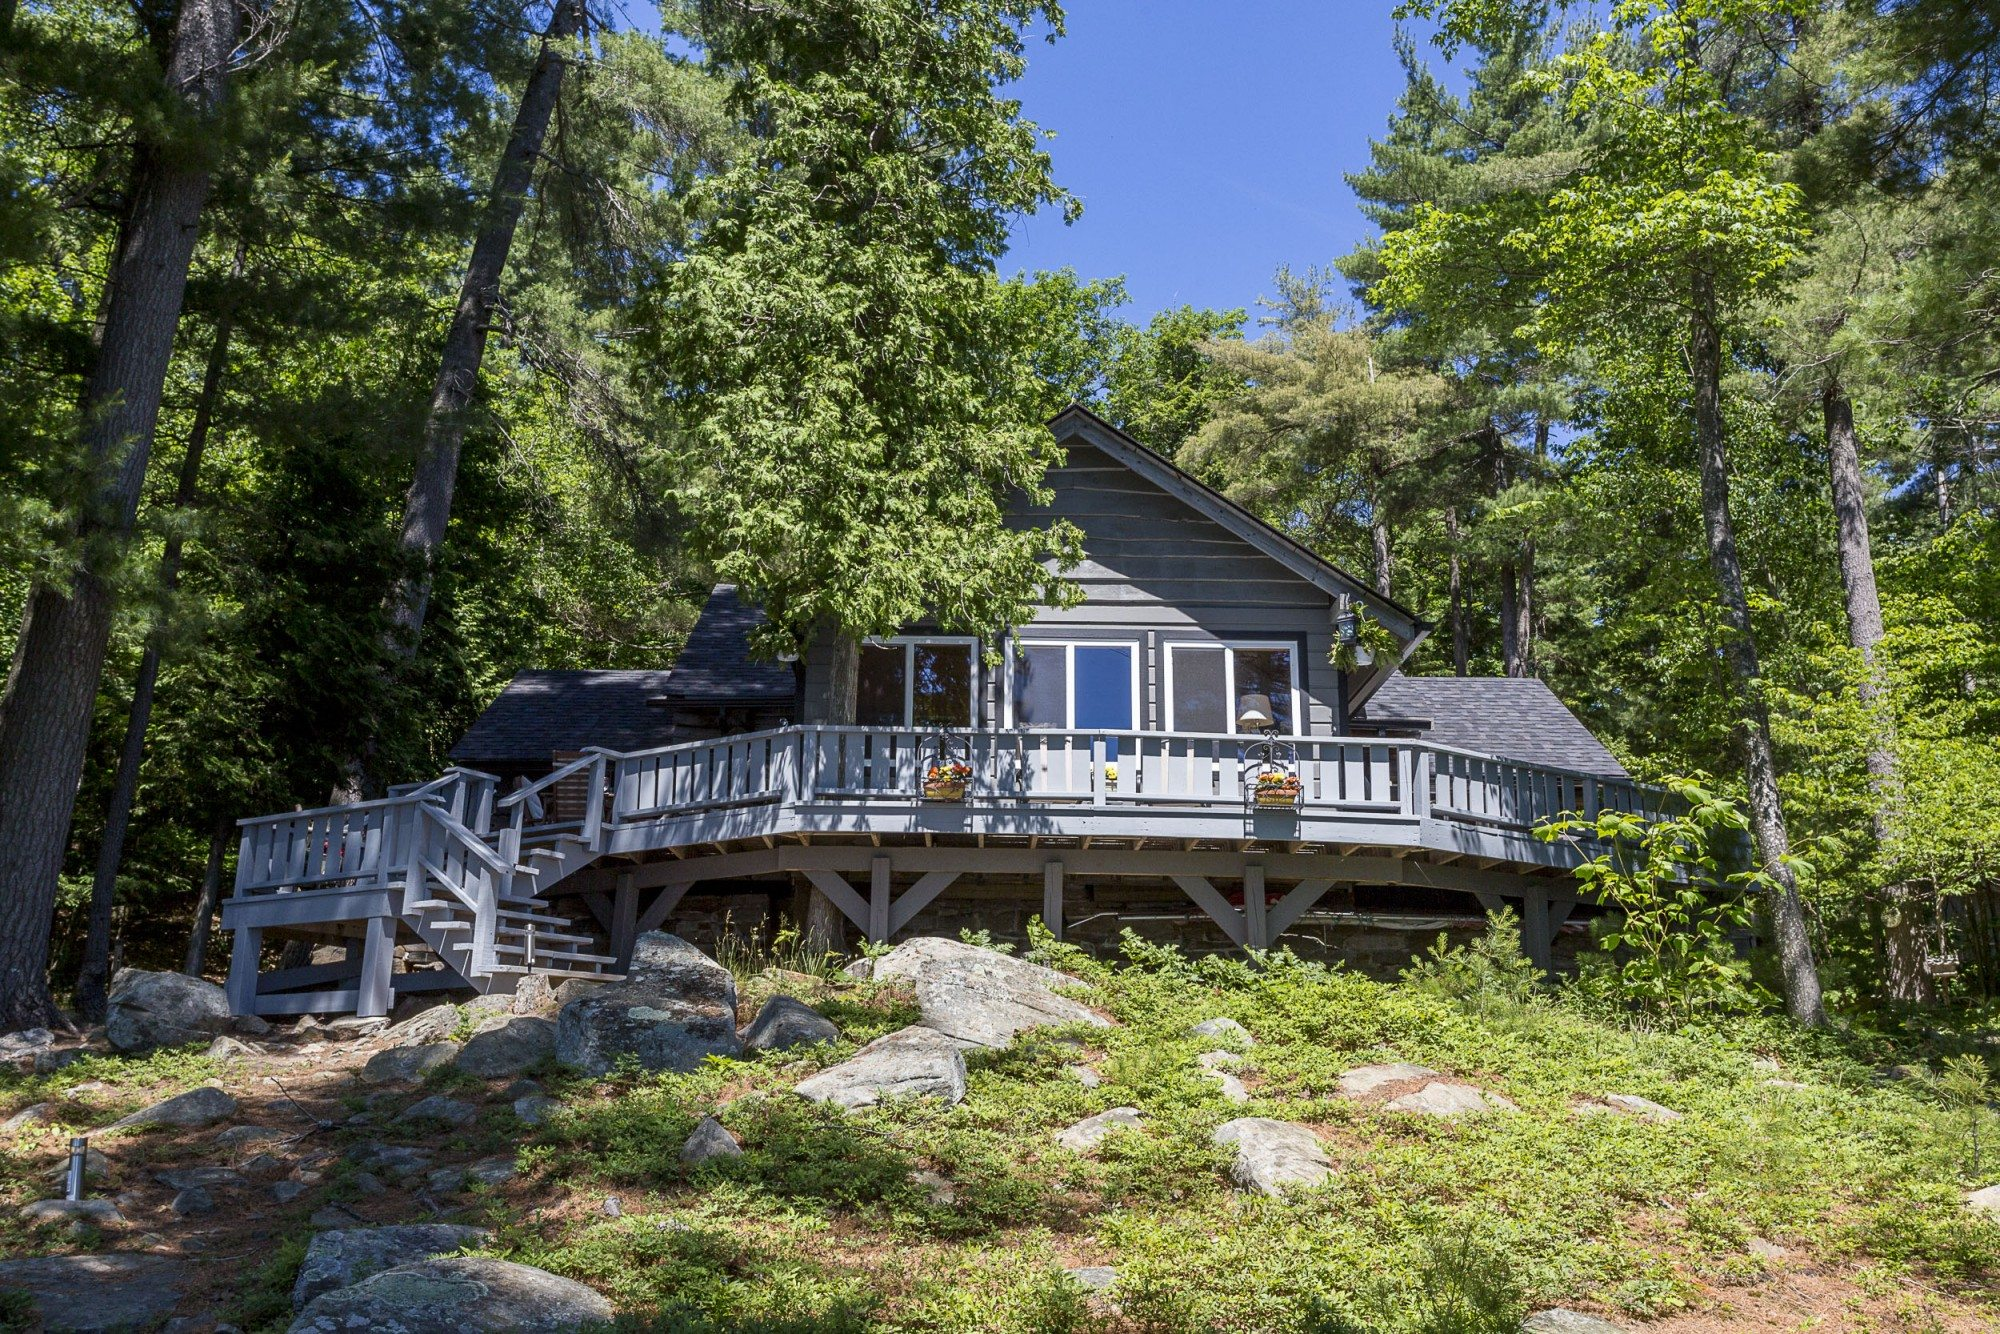 lake-of-bays-cottage-of-the-week-1057-montgomery-bay-road.10